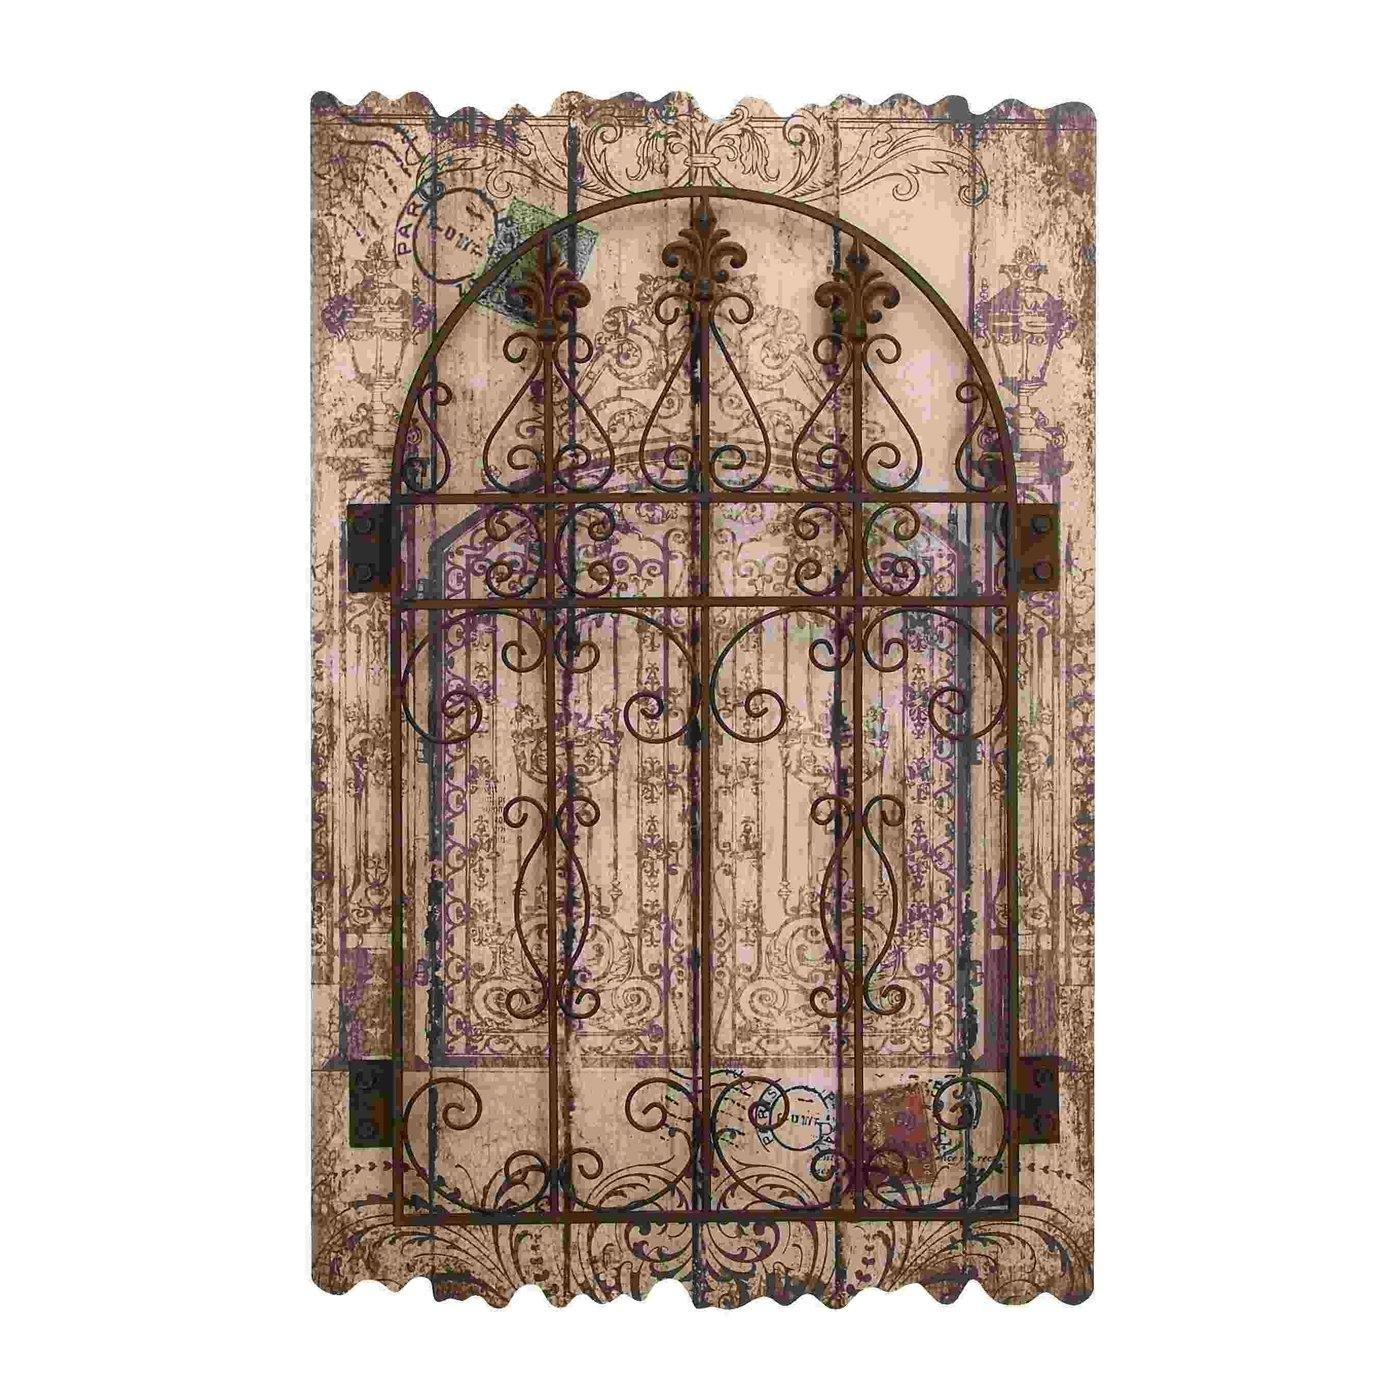 Home Design : Rustic Wood And Metal Wall Art Asian Large Rustic Pertaining To Asian Metal Wall Art (Image 14 of 20)